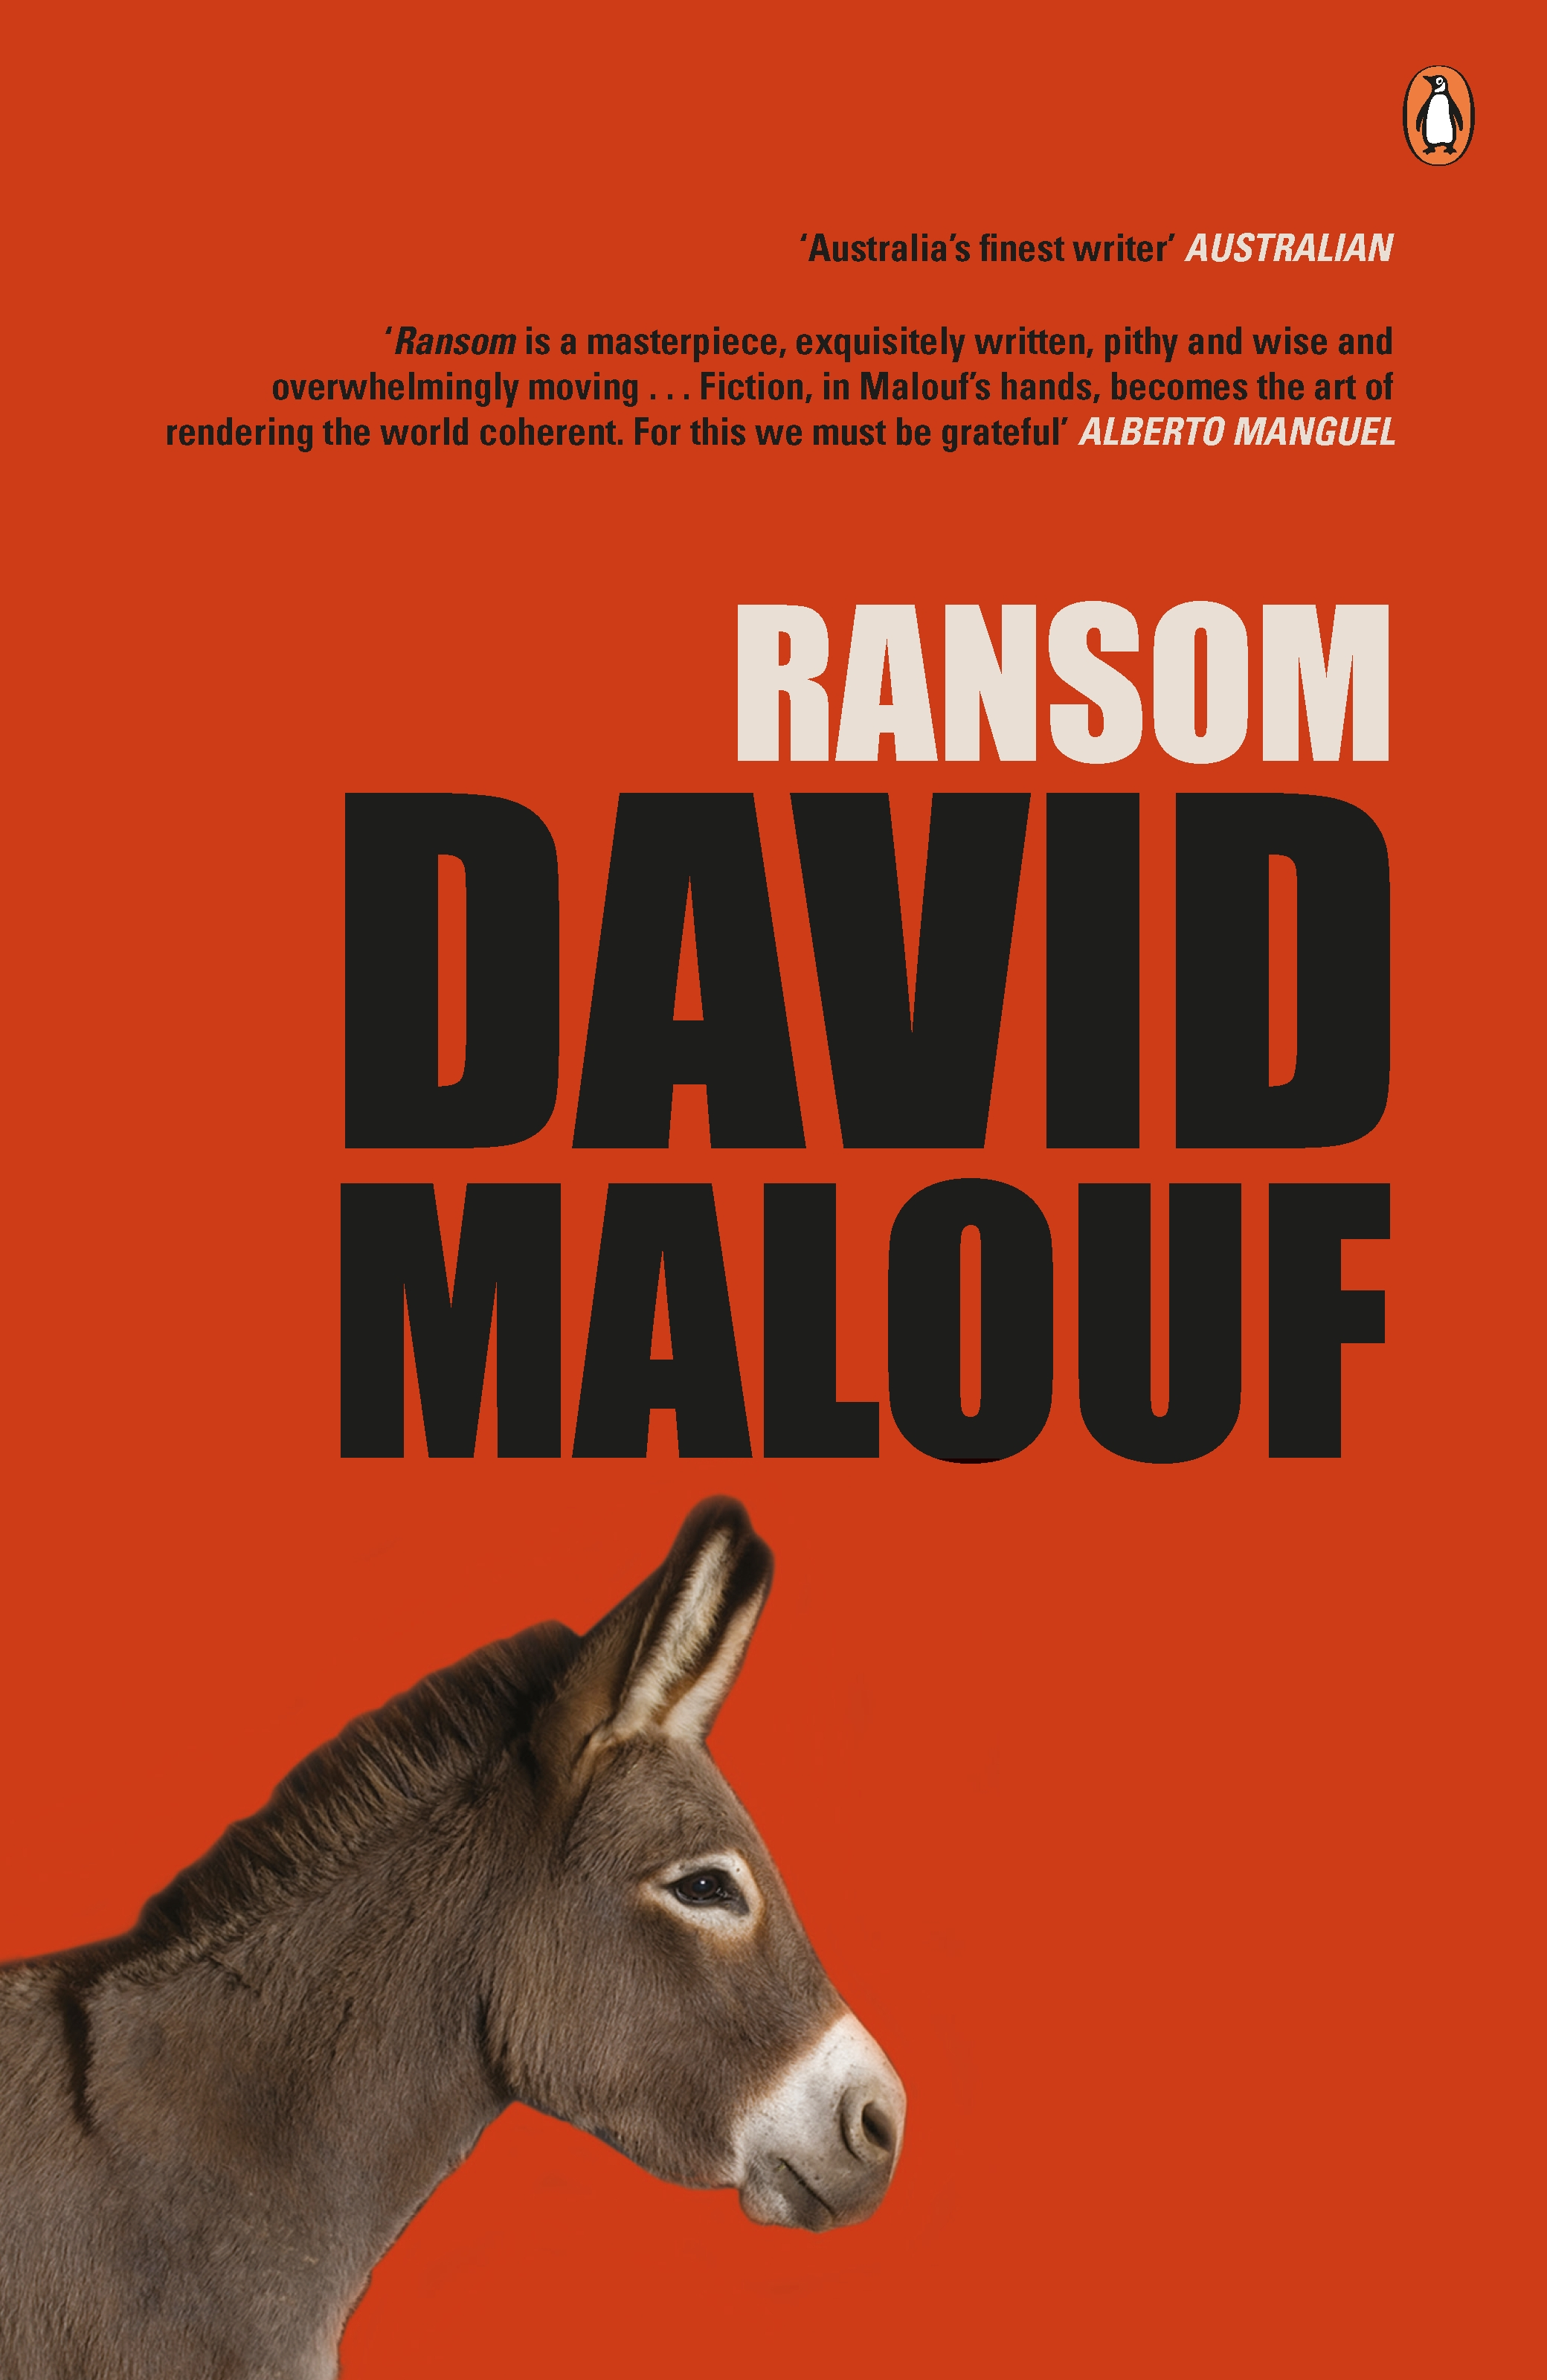 ransom david malouf In his first novel in more than a decade, award-winning author david malouf reimagines the pivotal narrative of homer's iliad--one of the most famous passages in all of literaturethis is the story of the relationship between two grieving men at w.